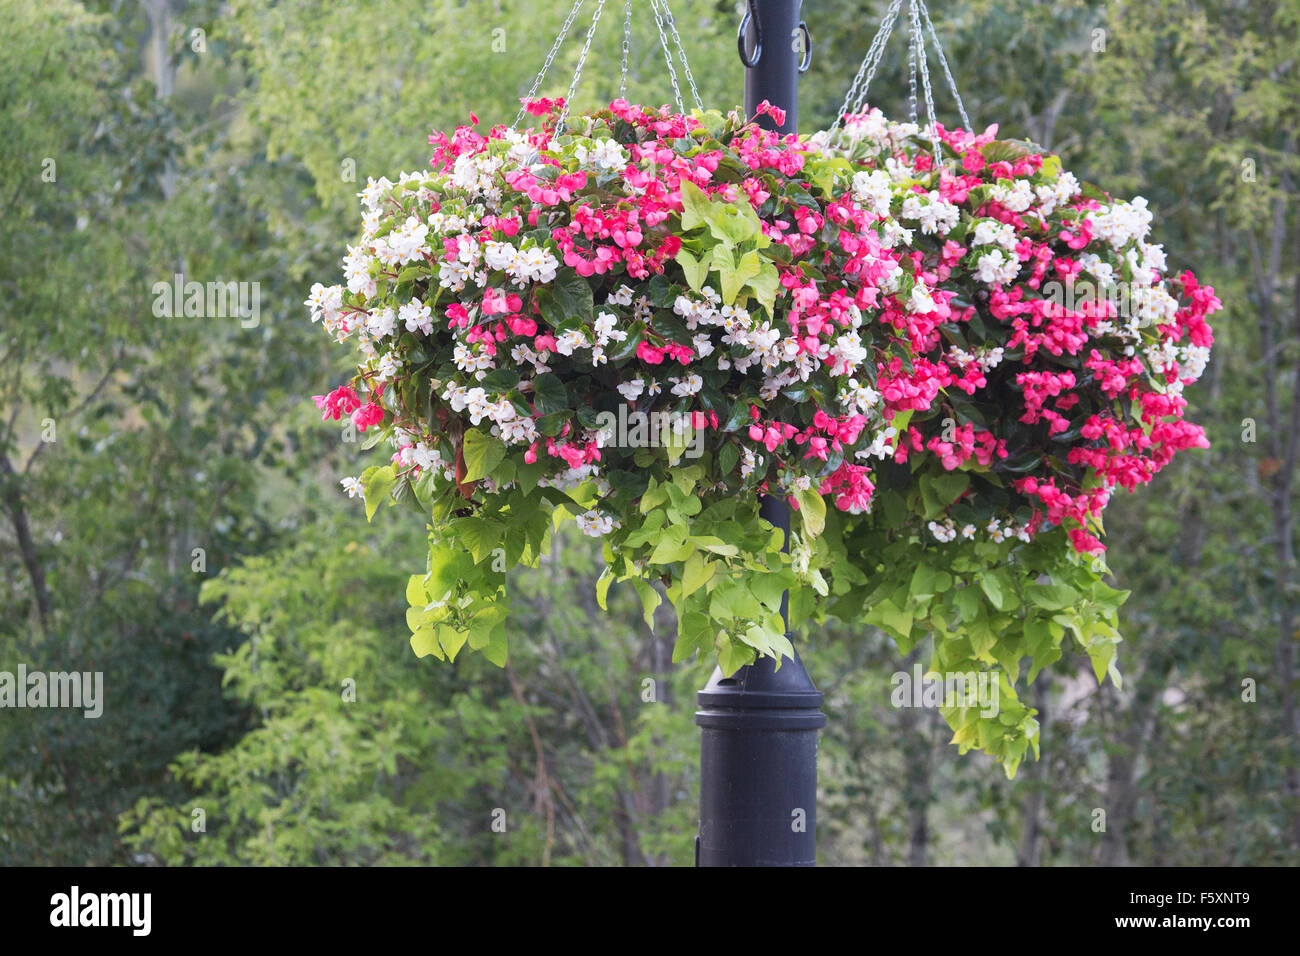 Summer flowers in hanging pots, Prince's Island Park - Stock Image